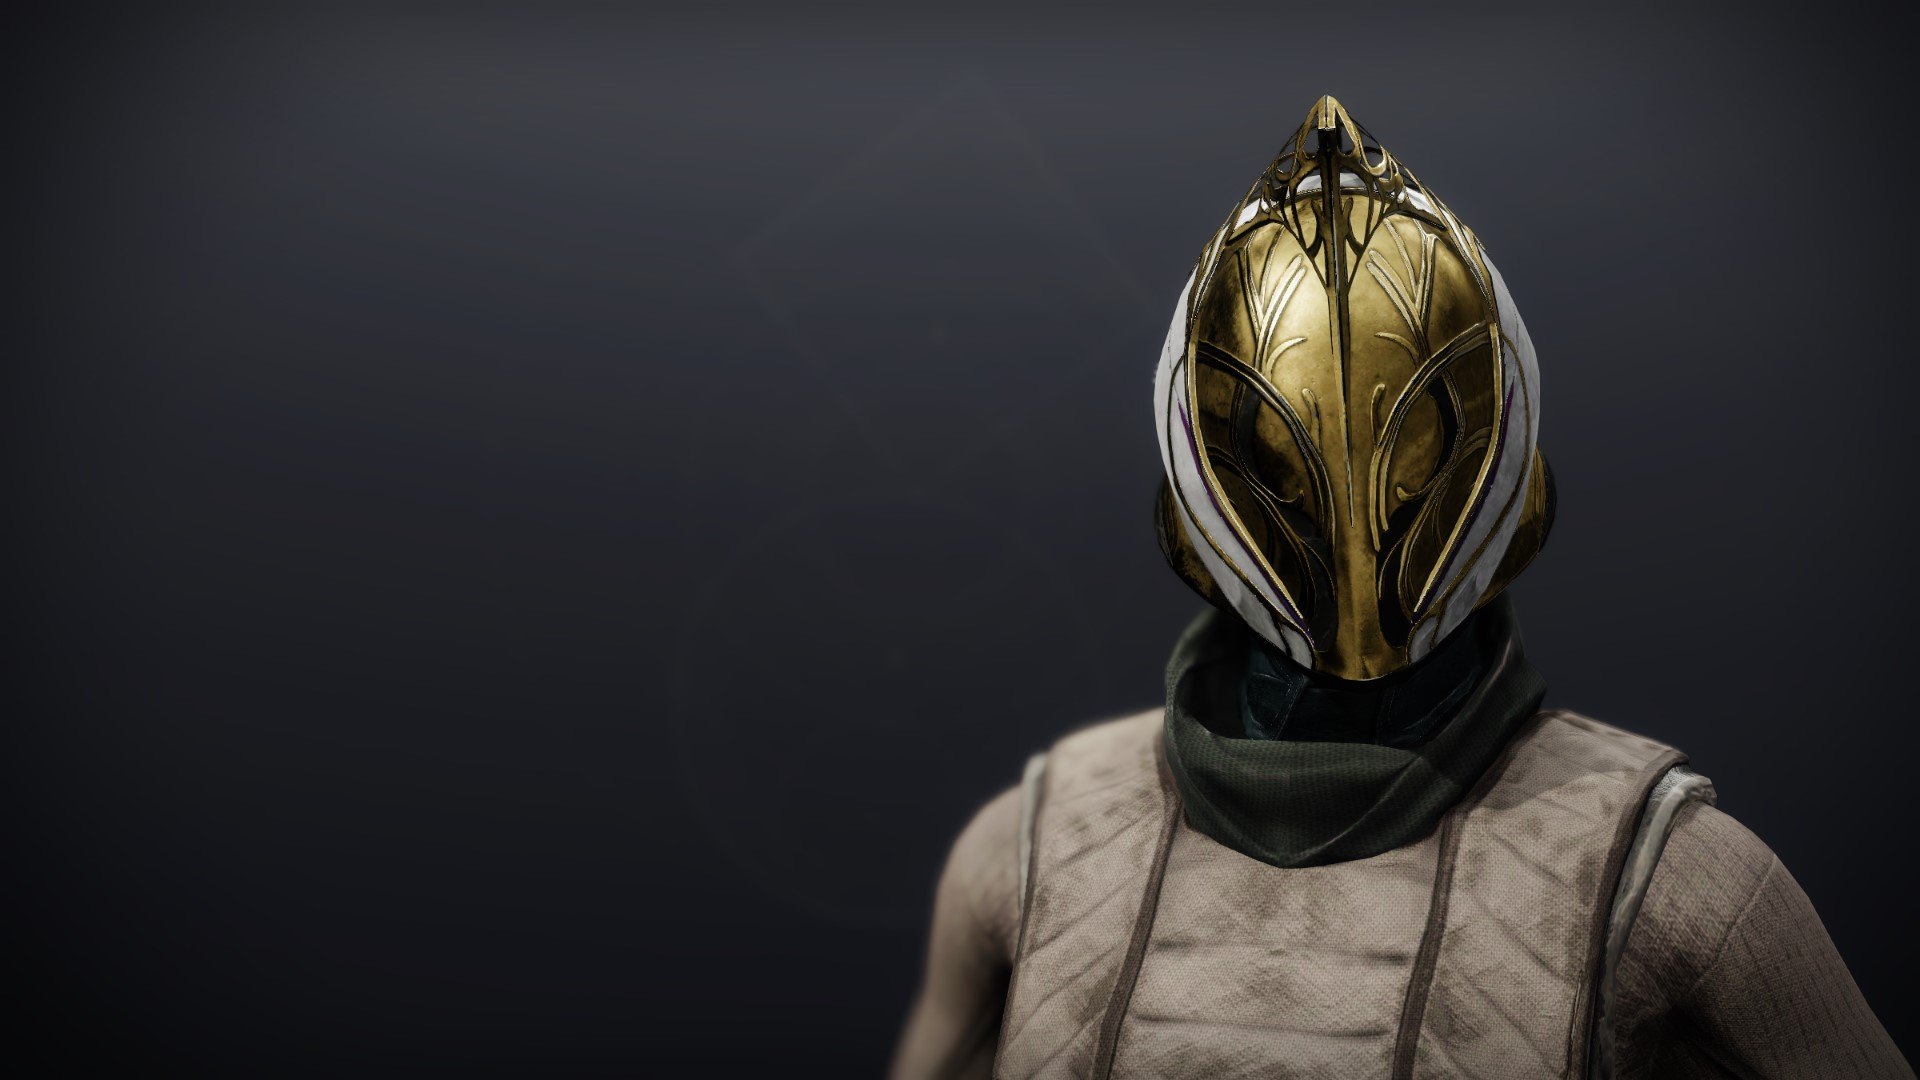 An in-game render of the Celestine Hood (Majestic).